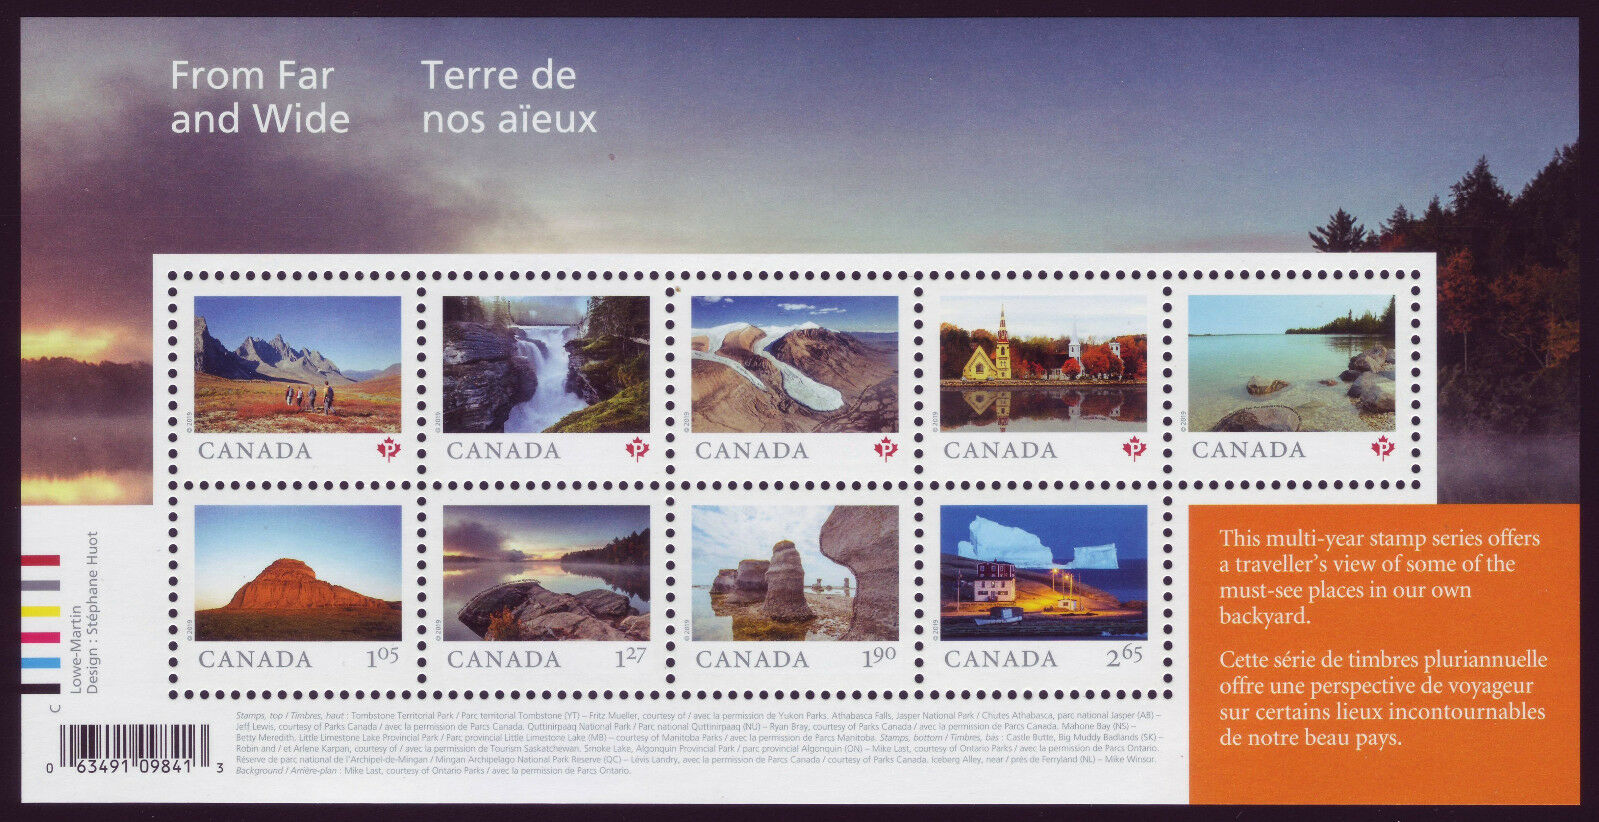 Canada - Far and Wide (January 14, 2019) souvenir sheet of 9